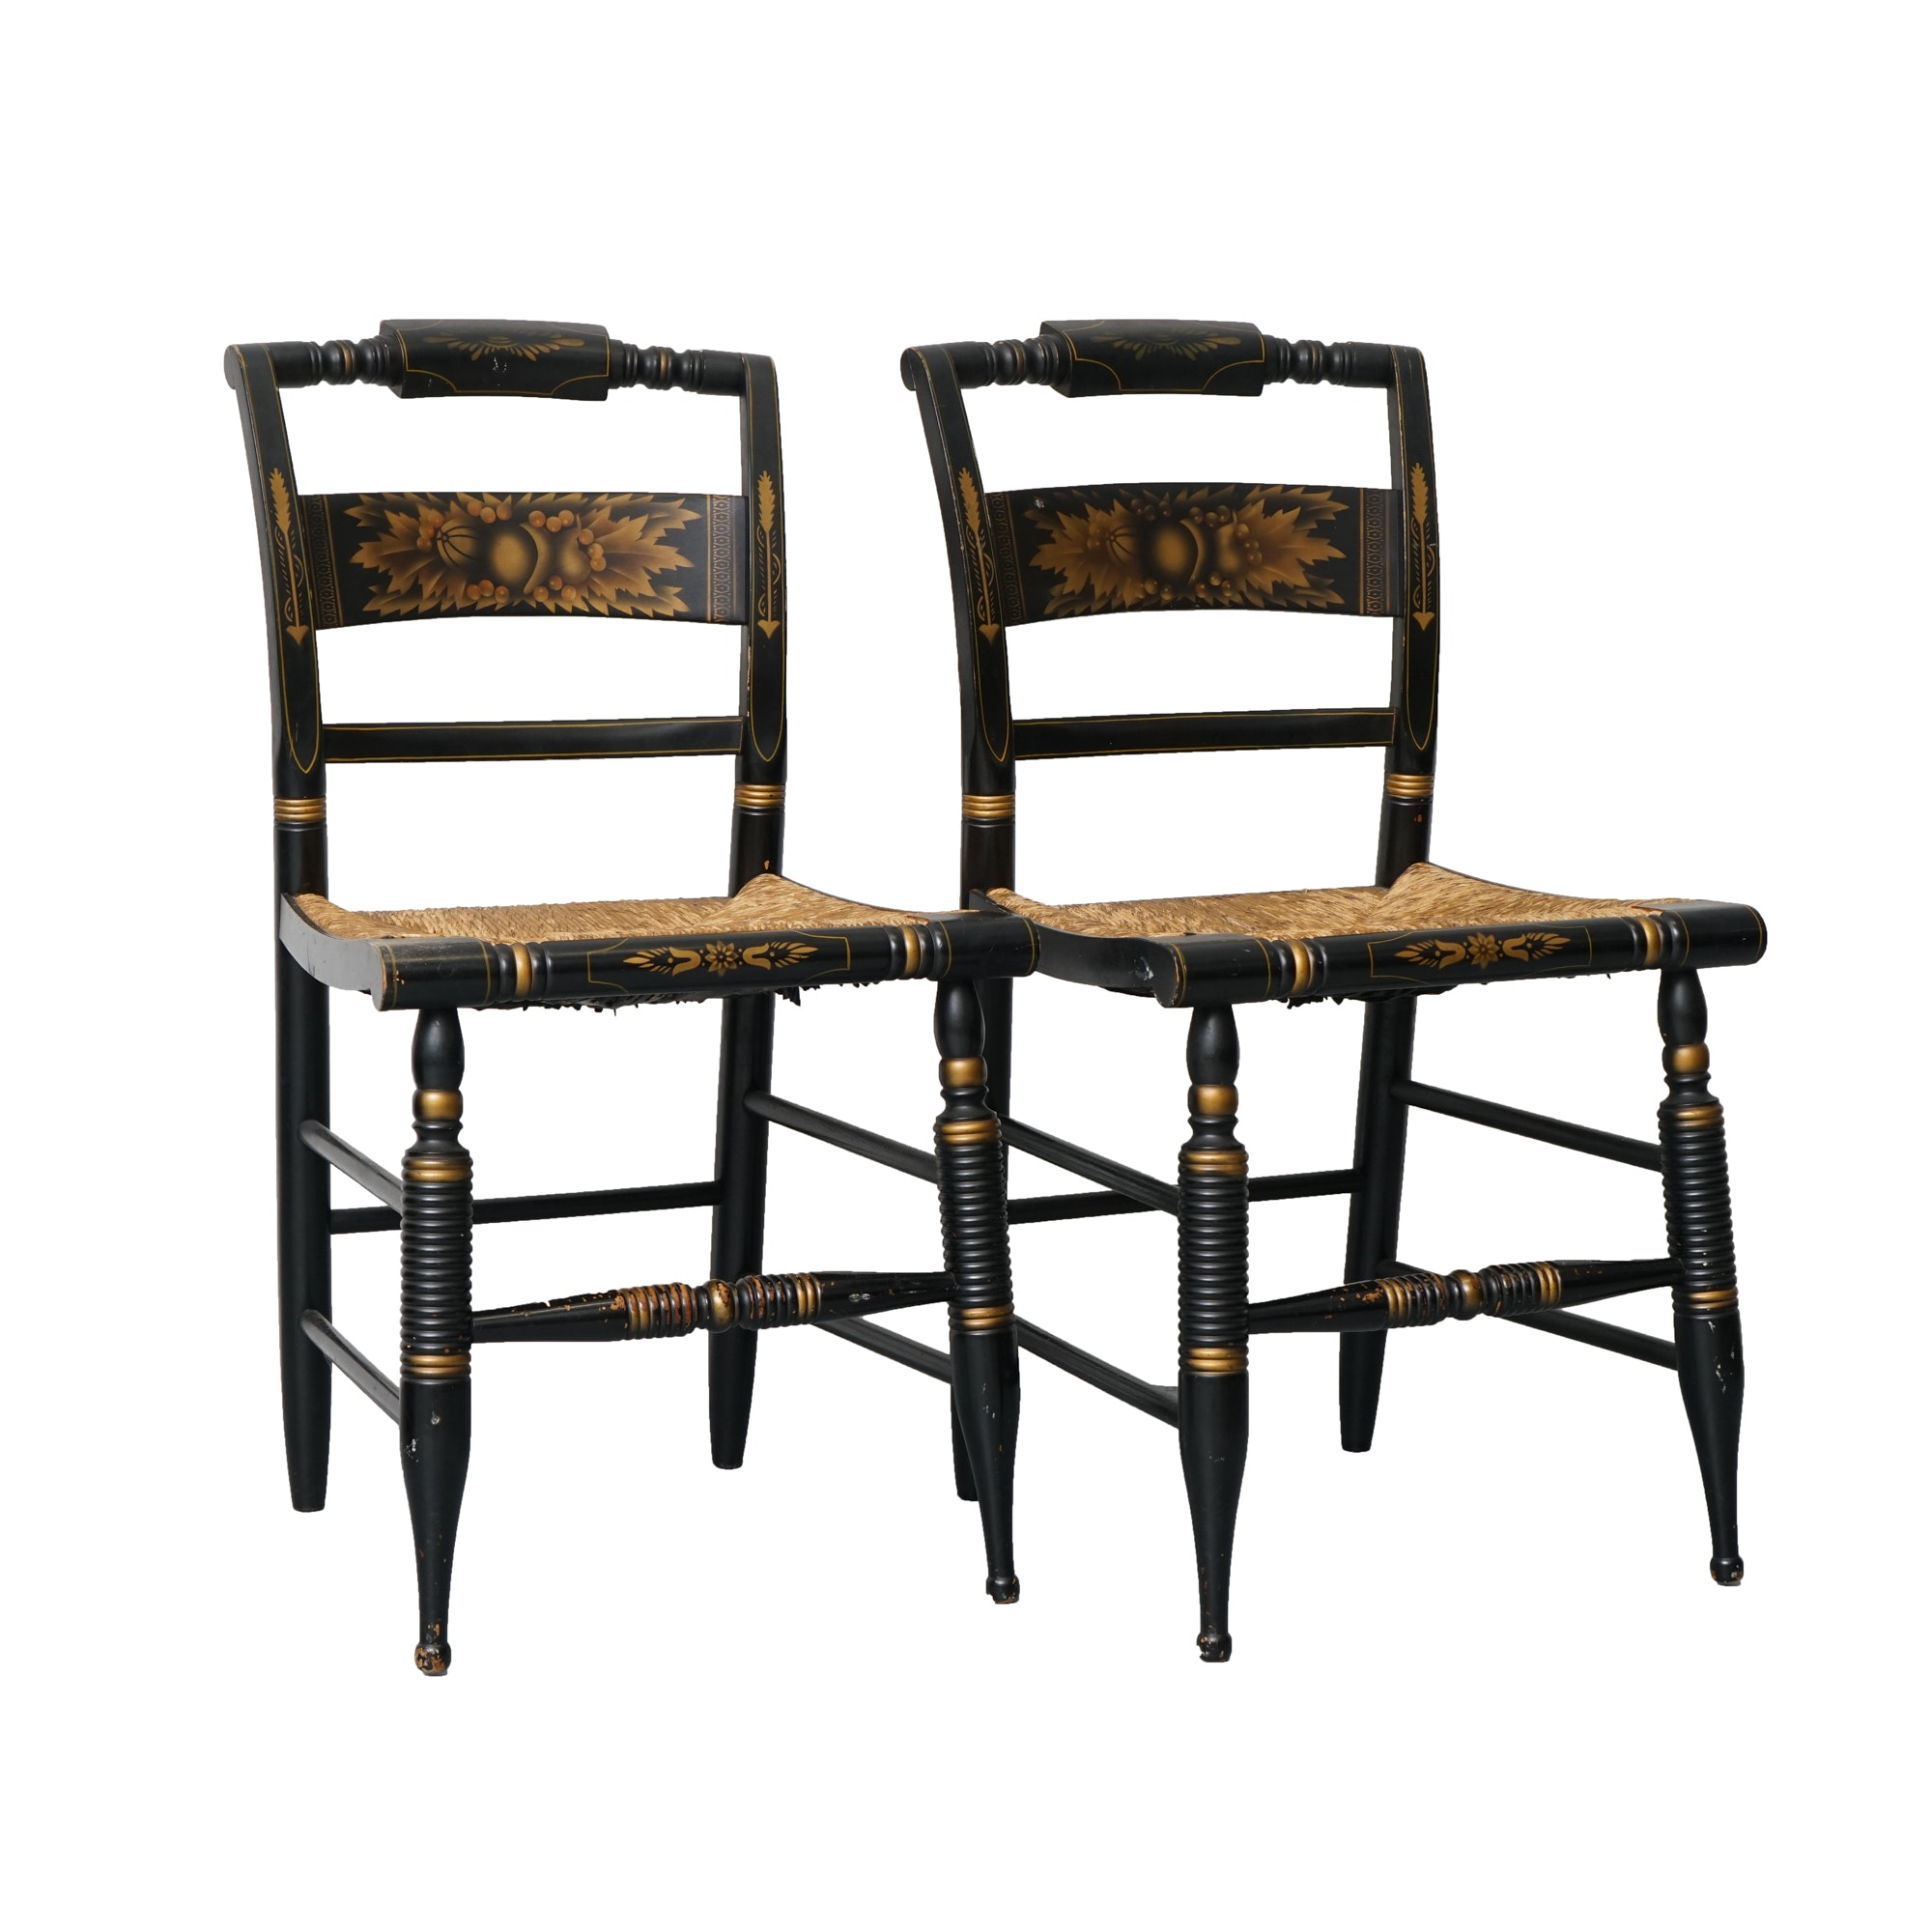 Vintage Painted Side Chairs with Rush Seats by L. Hitchcock